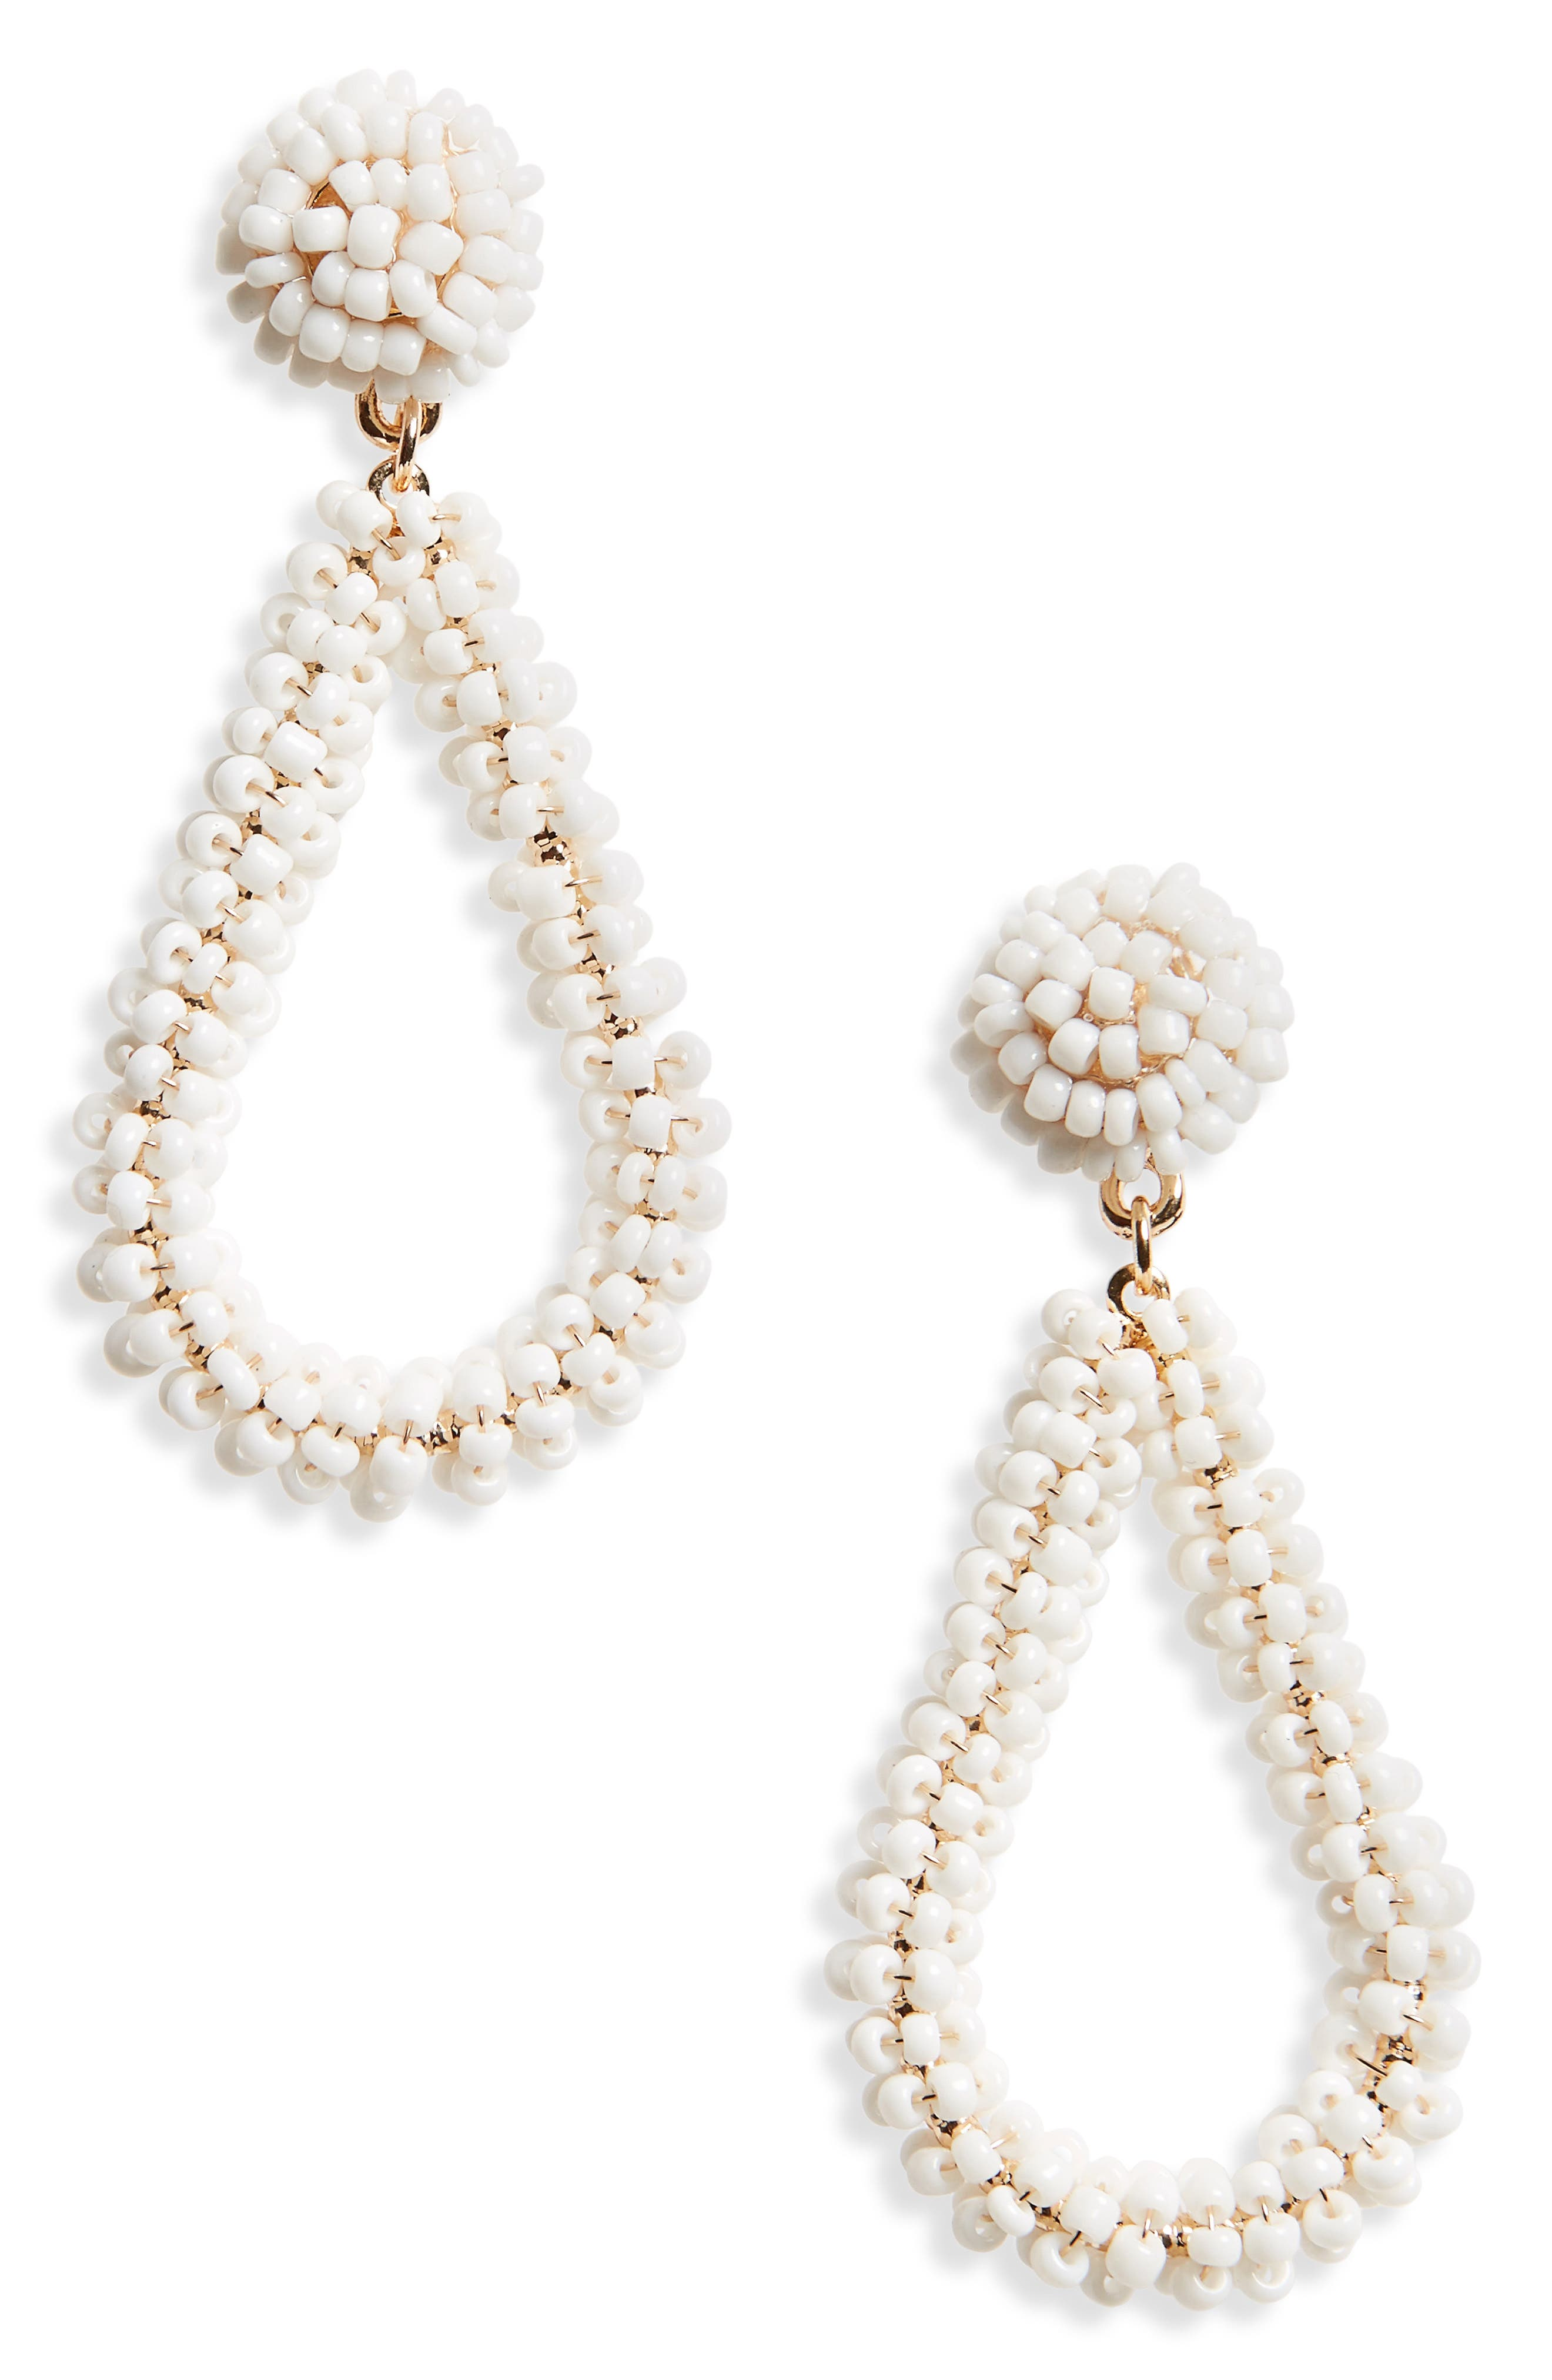 Bead Drop Earrings,                             Main thumbnail 1, color,                             White